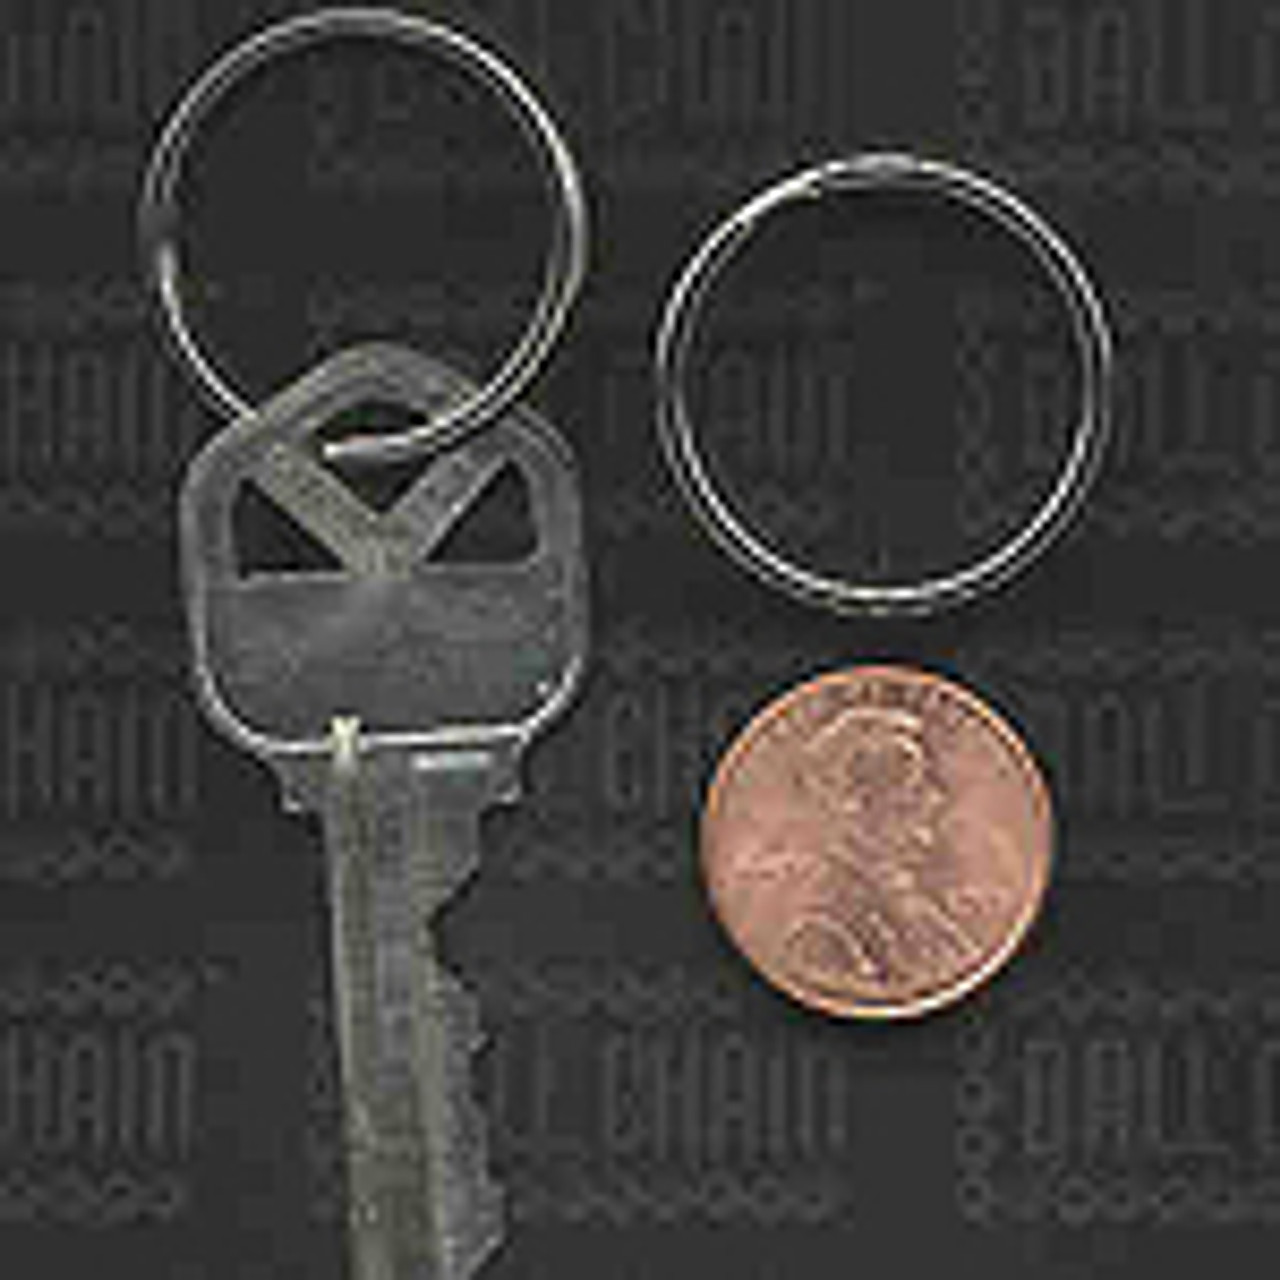 24mm nickel plated split ring perspective photo comparing the size of the key ring to a key and a united states penny.